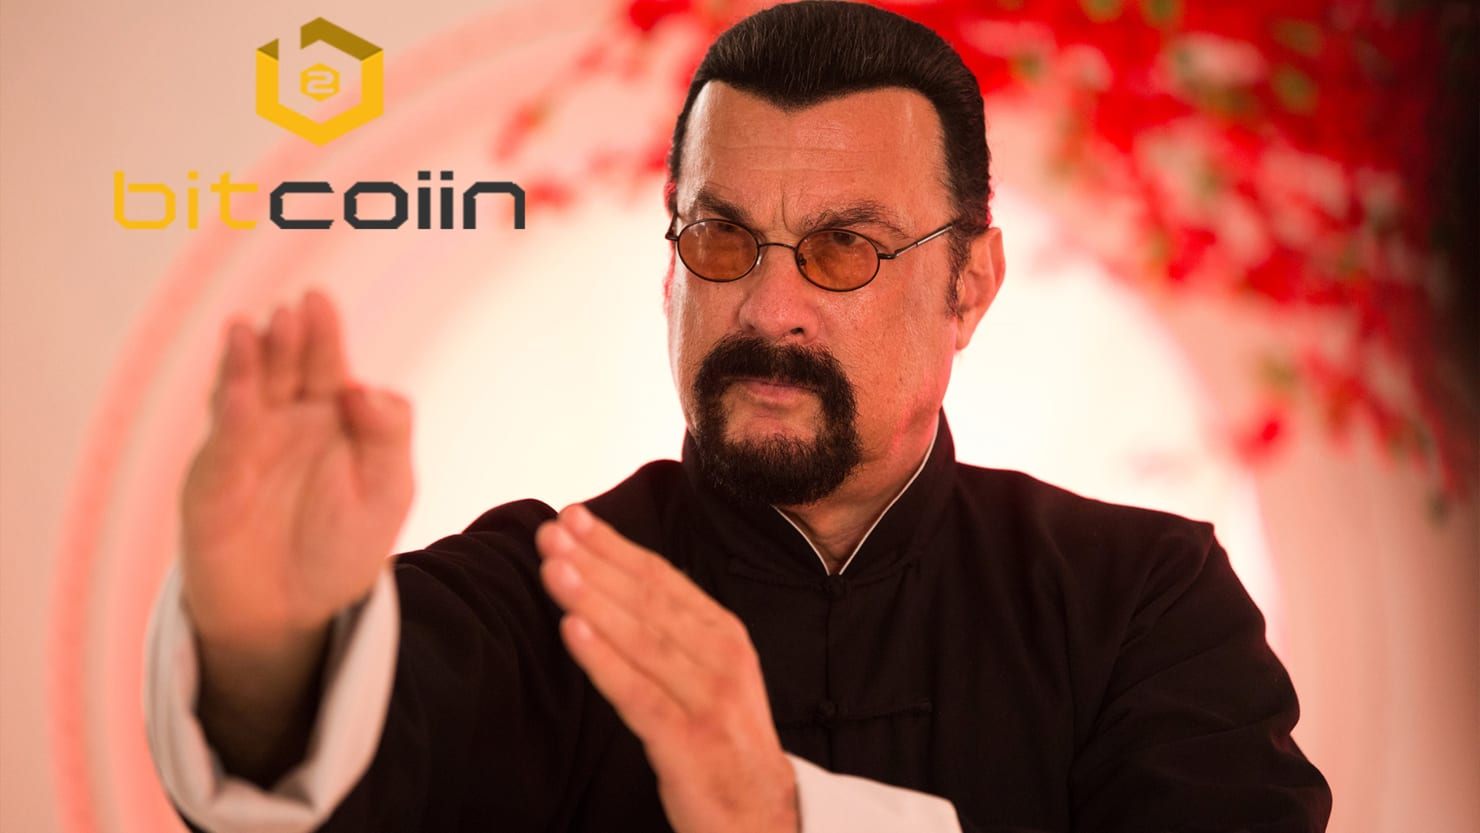 Steven Seagal, a Lacking Deepest Seek, and an Alleged Crypto Fraud